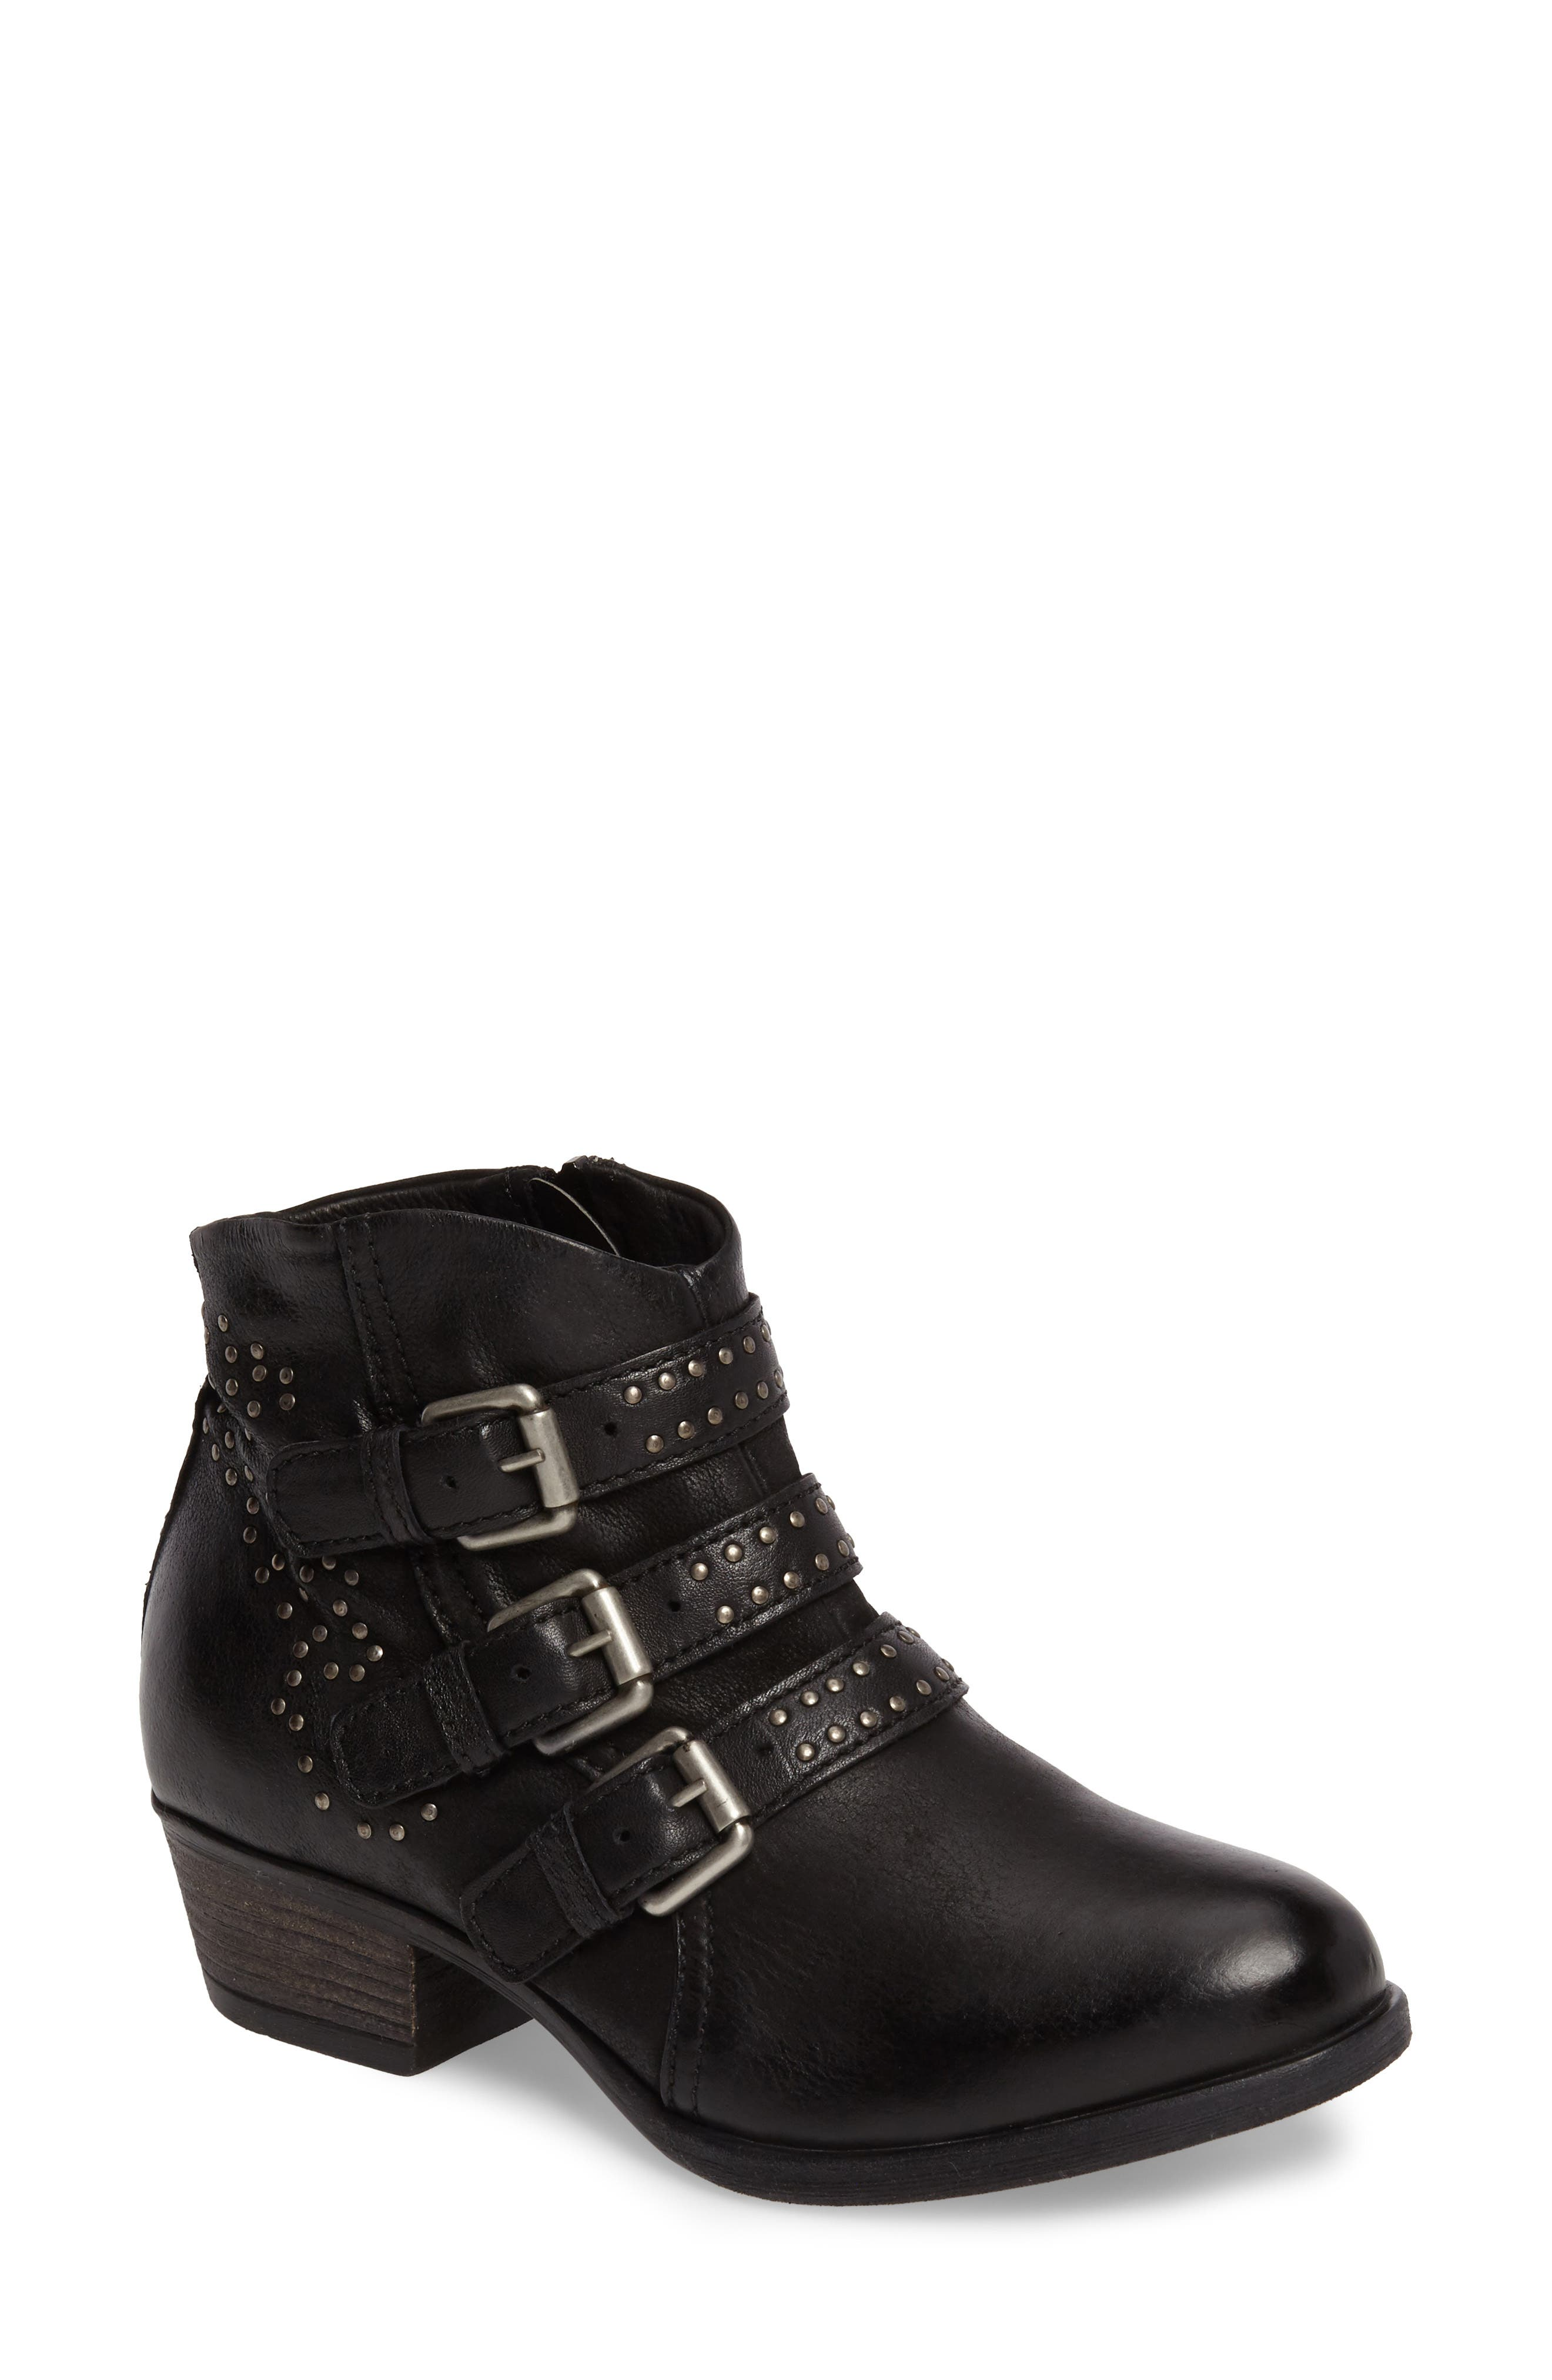 Barclay Studded Moto Bootie,                         Main,                         color, 001